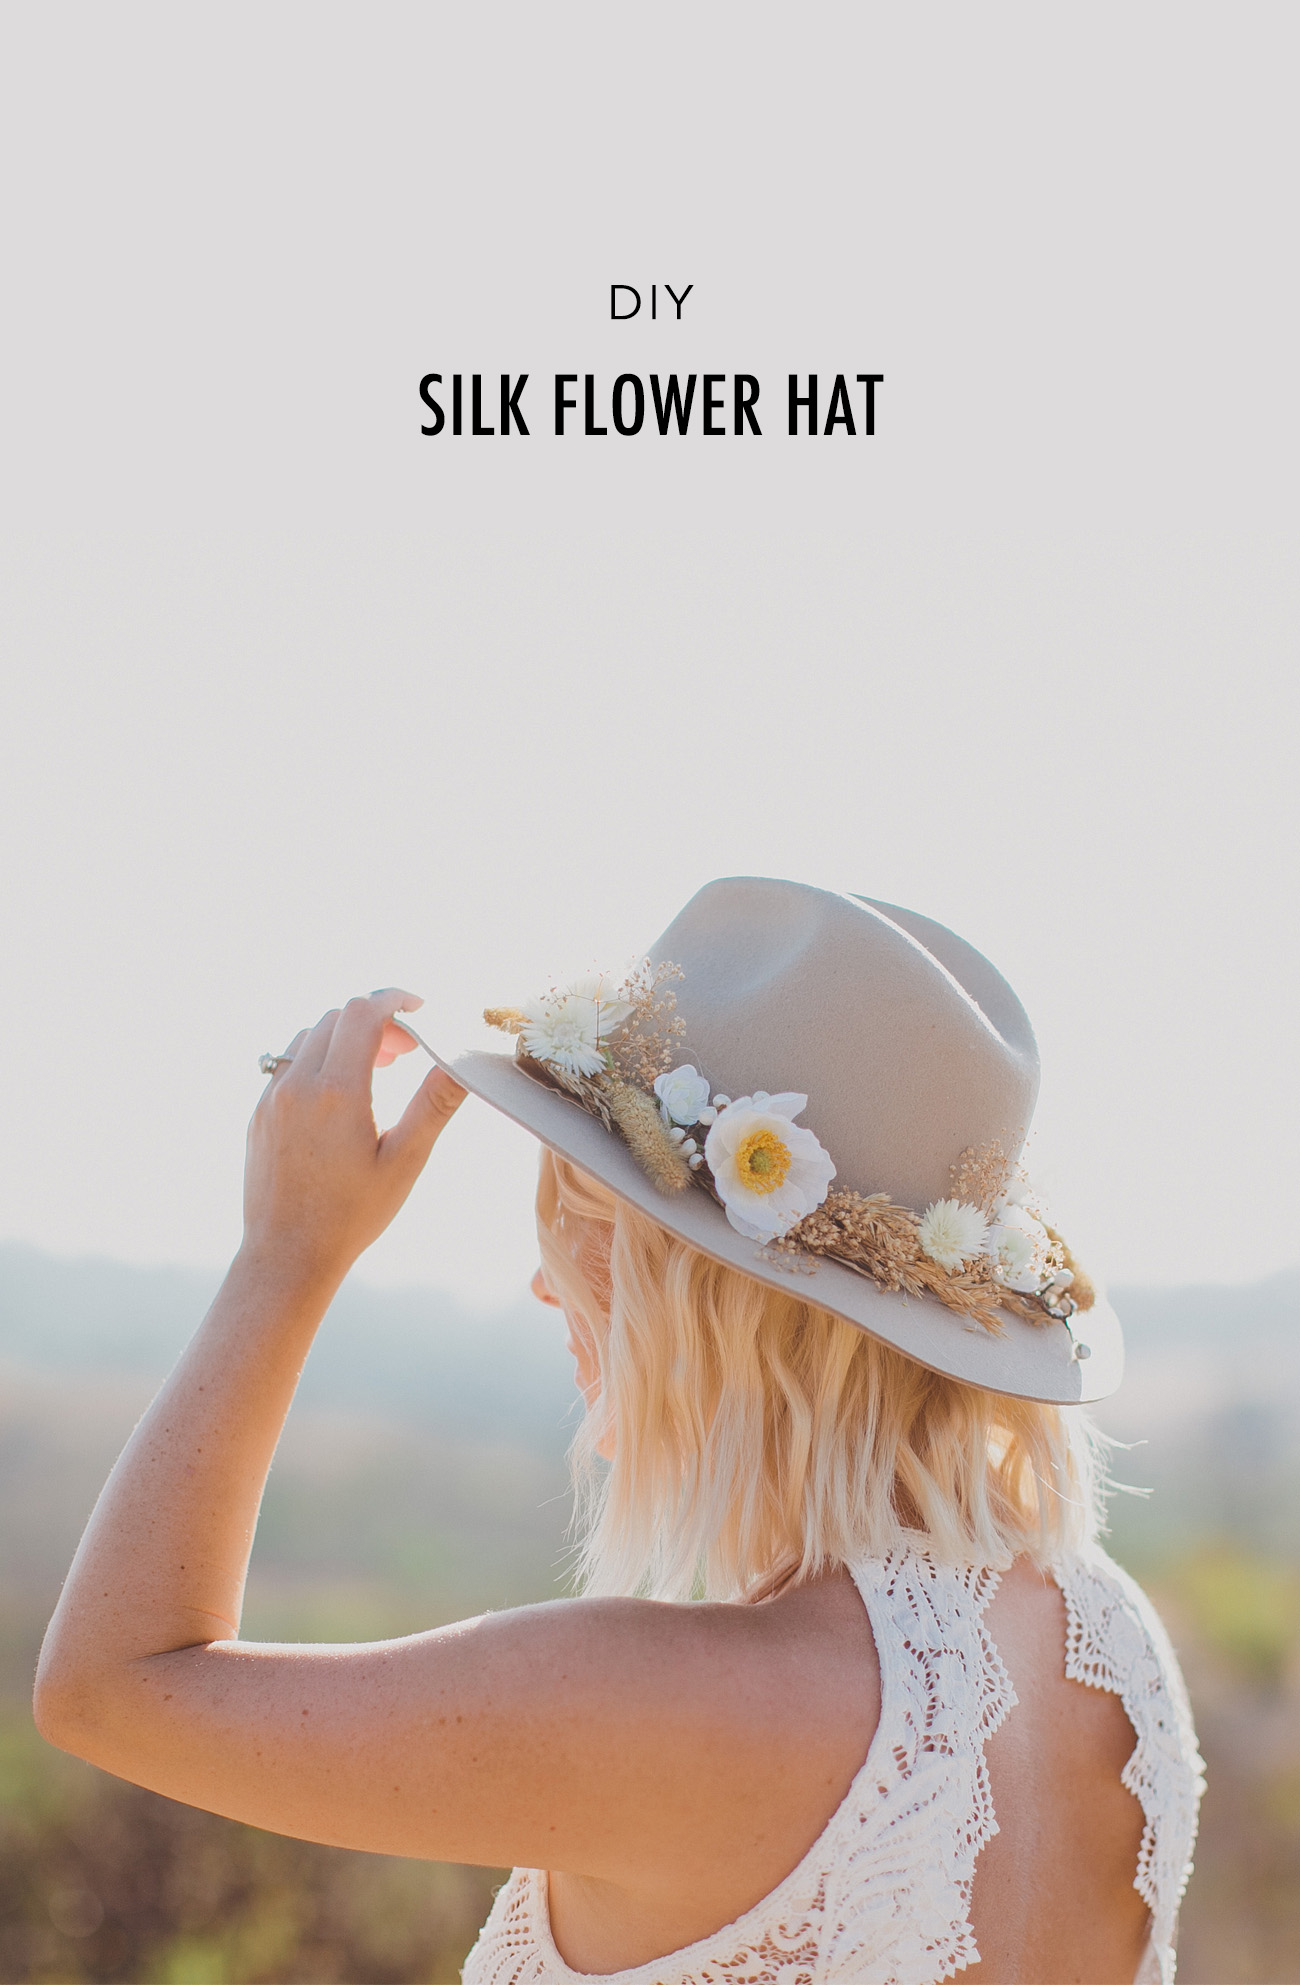 DIY Silk Flower Hat